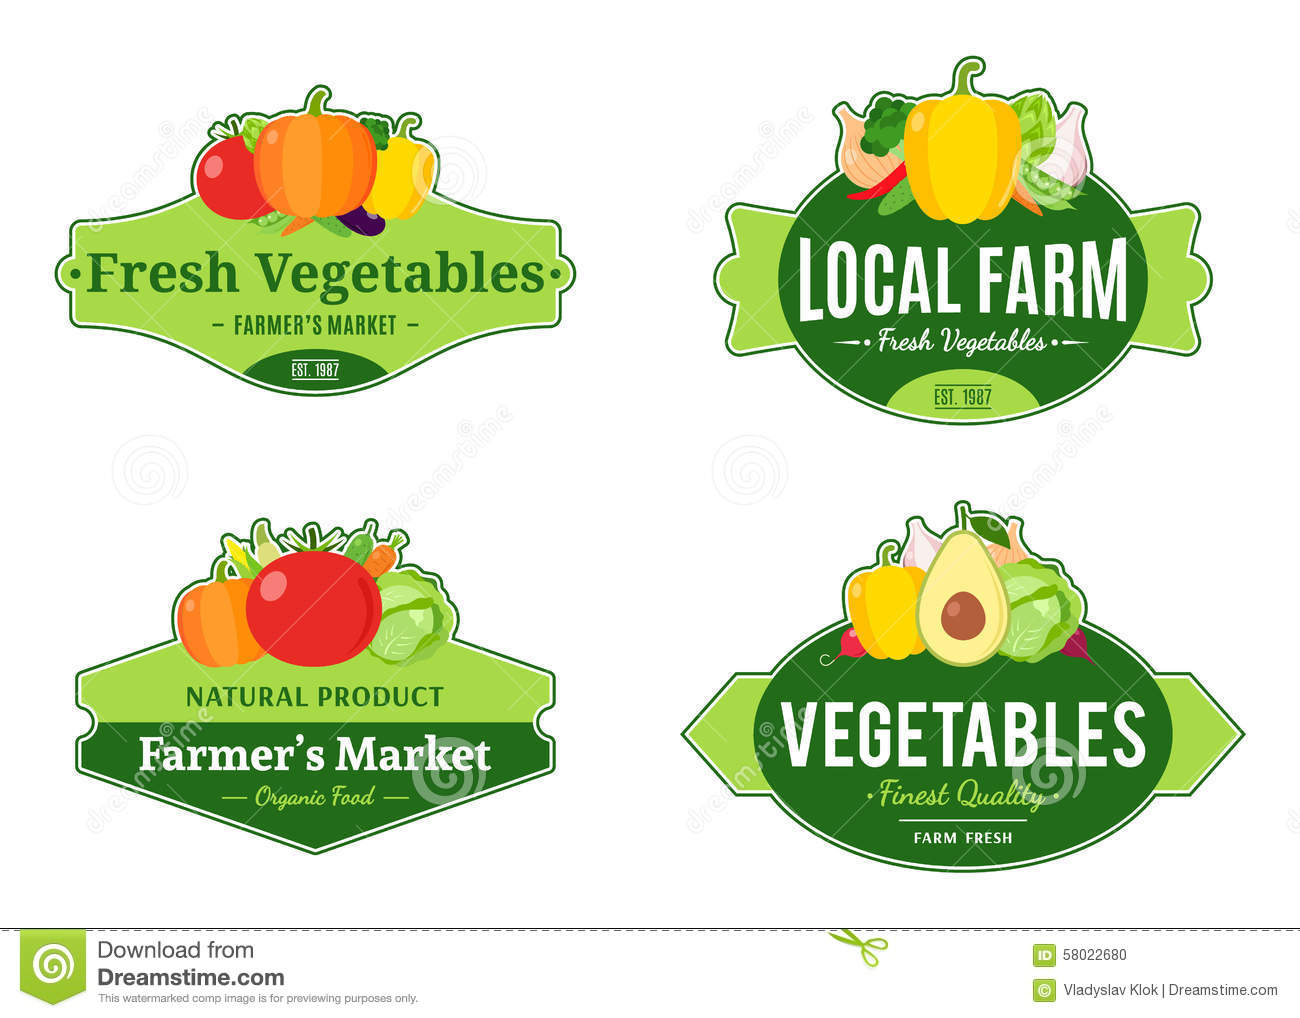 Vintage Vegetables Logos And Design Elements Illustration 58022680